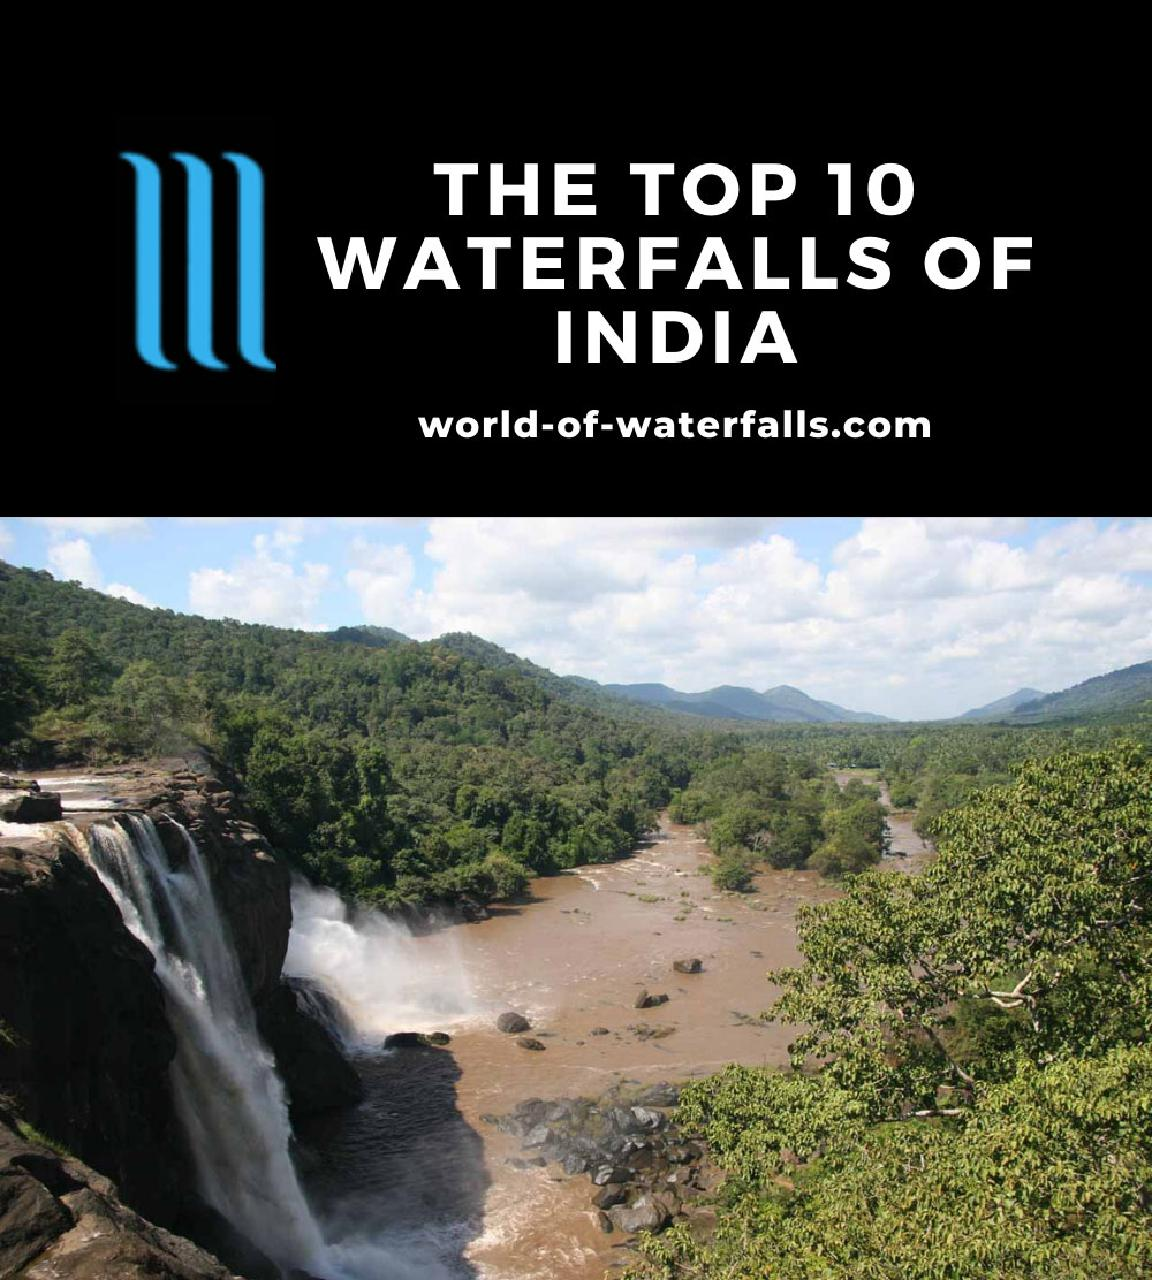 The Top 10 Waterfalls of India